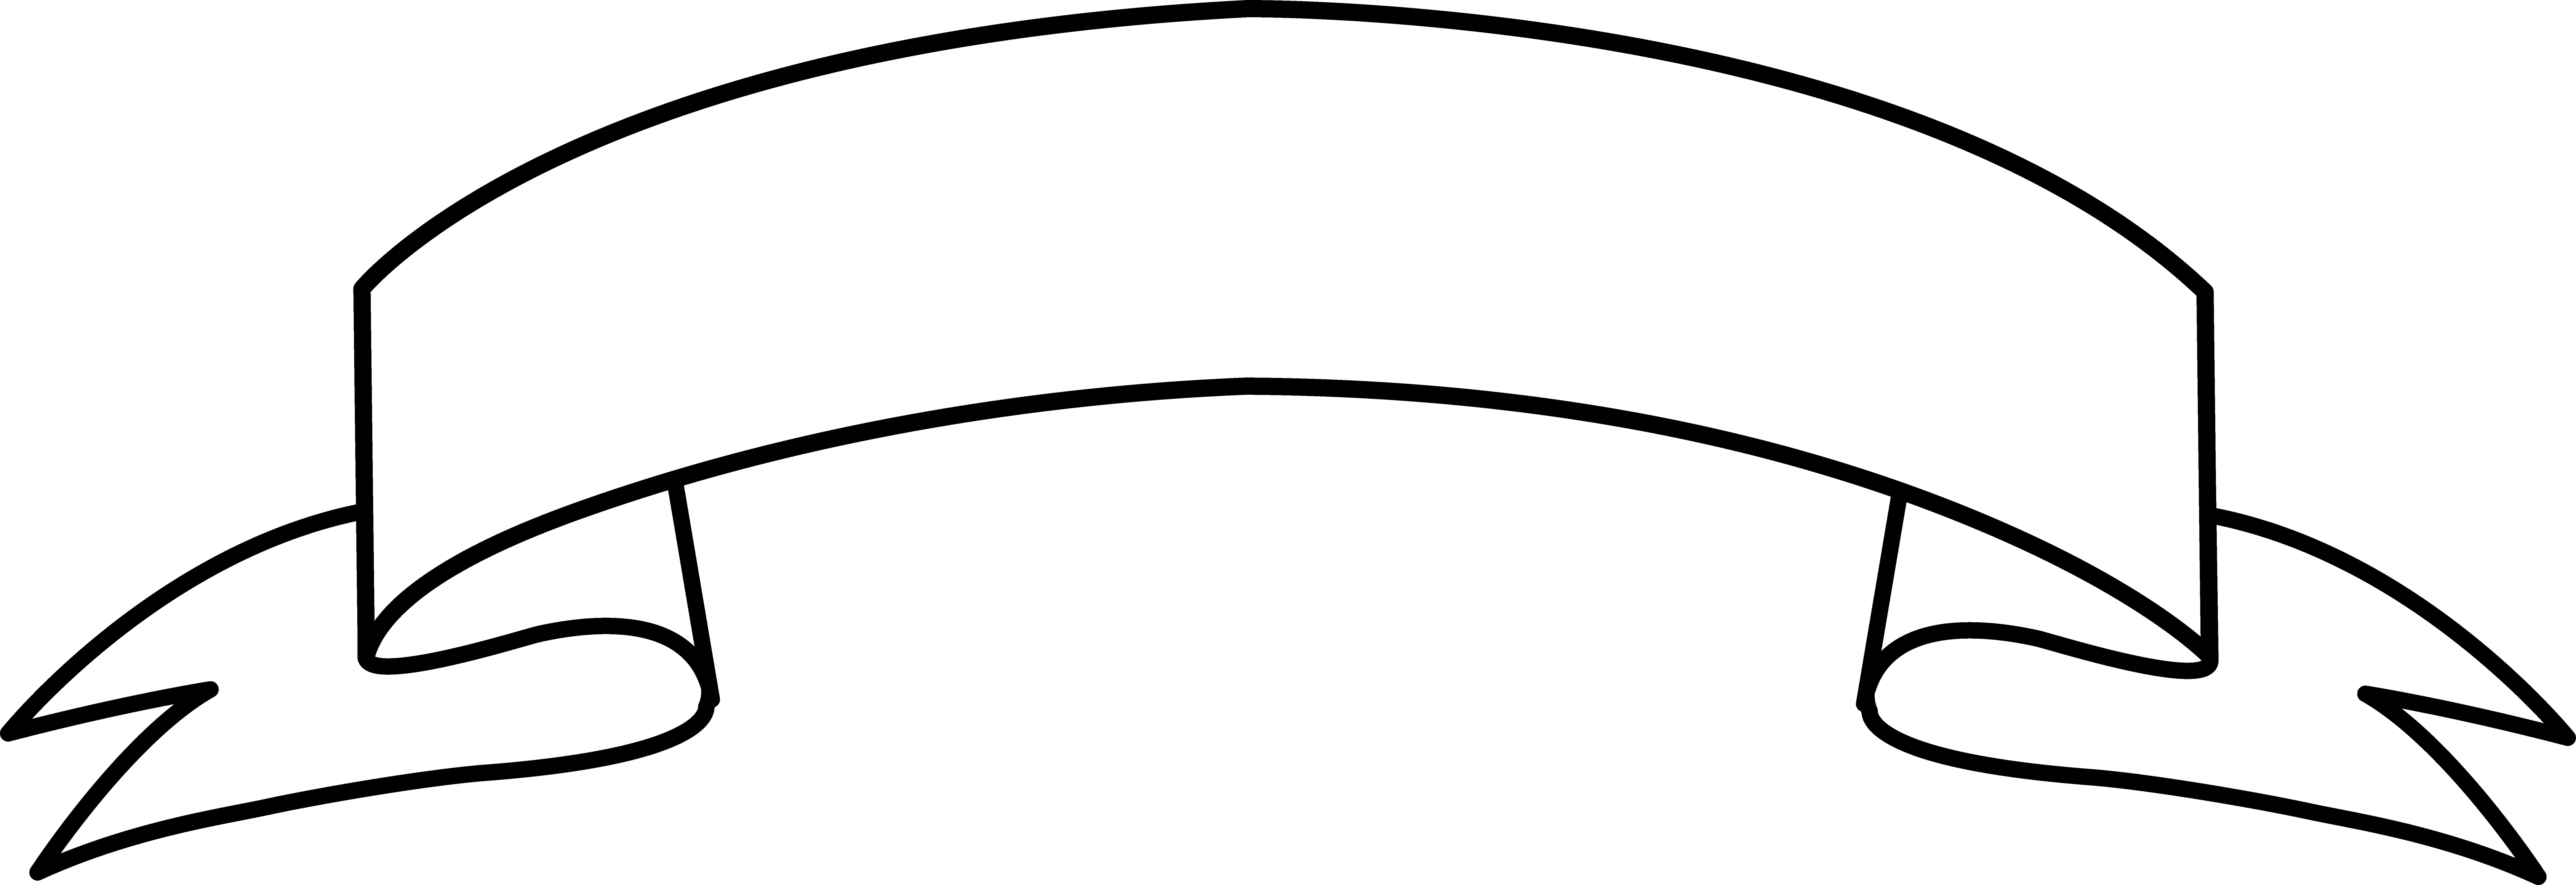 11790x4049 Black Banner Clipart Free Clipart Images